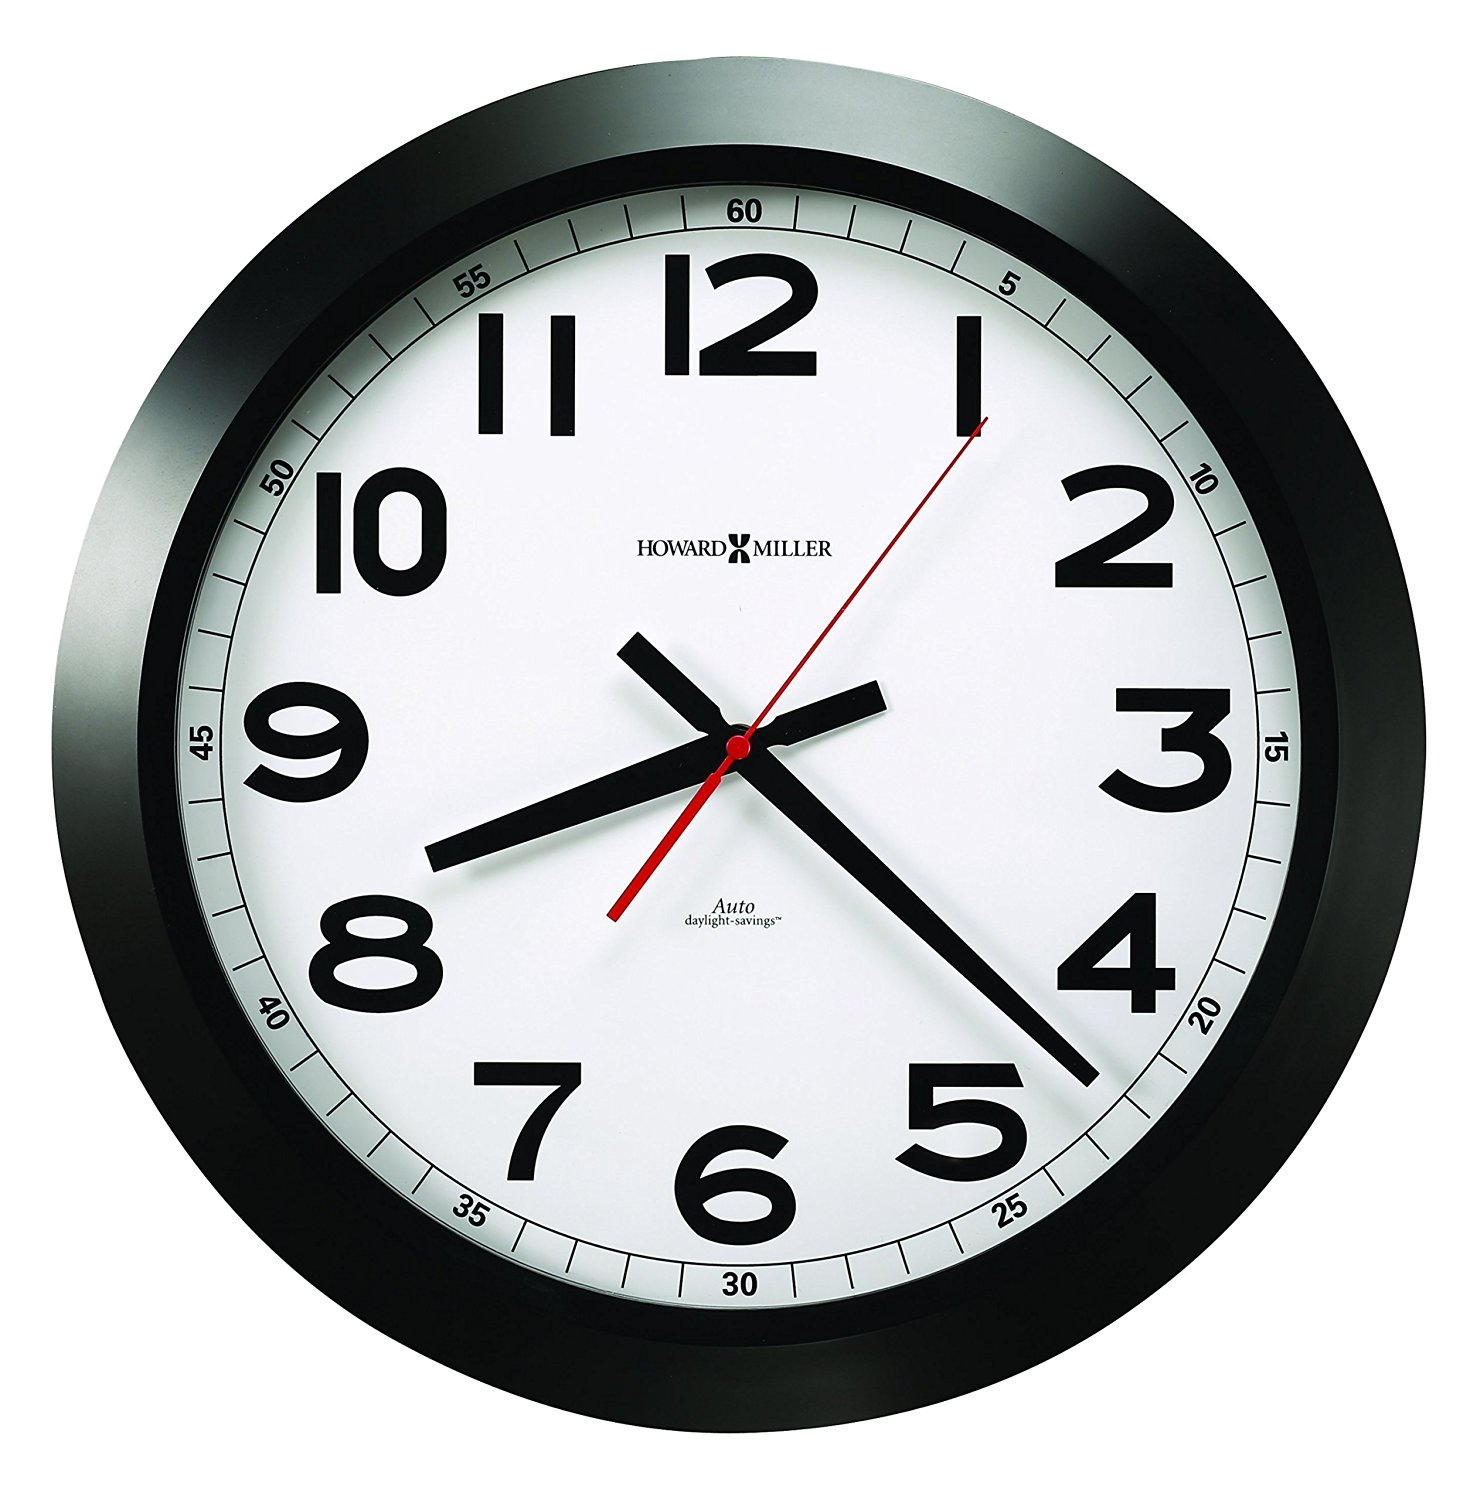 "Howard Miller Elegant Norcross Auto Daylight-Savings Wall Clock, 15-3/4"", Black (625509)"